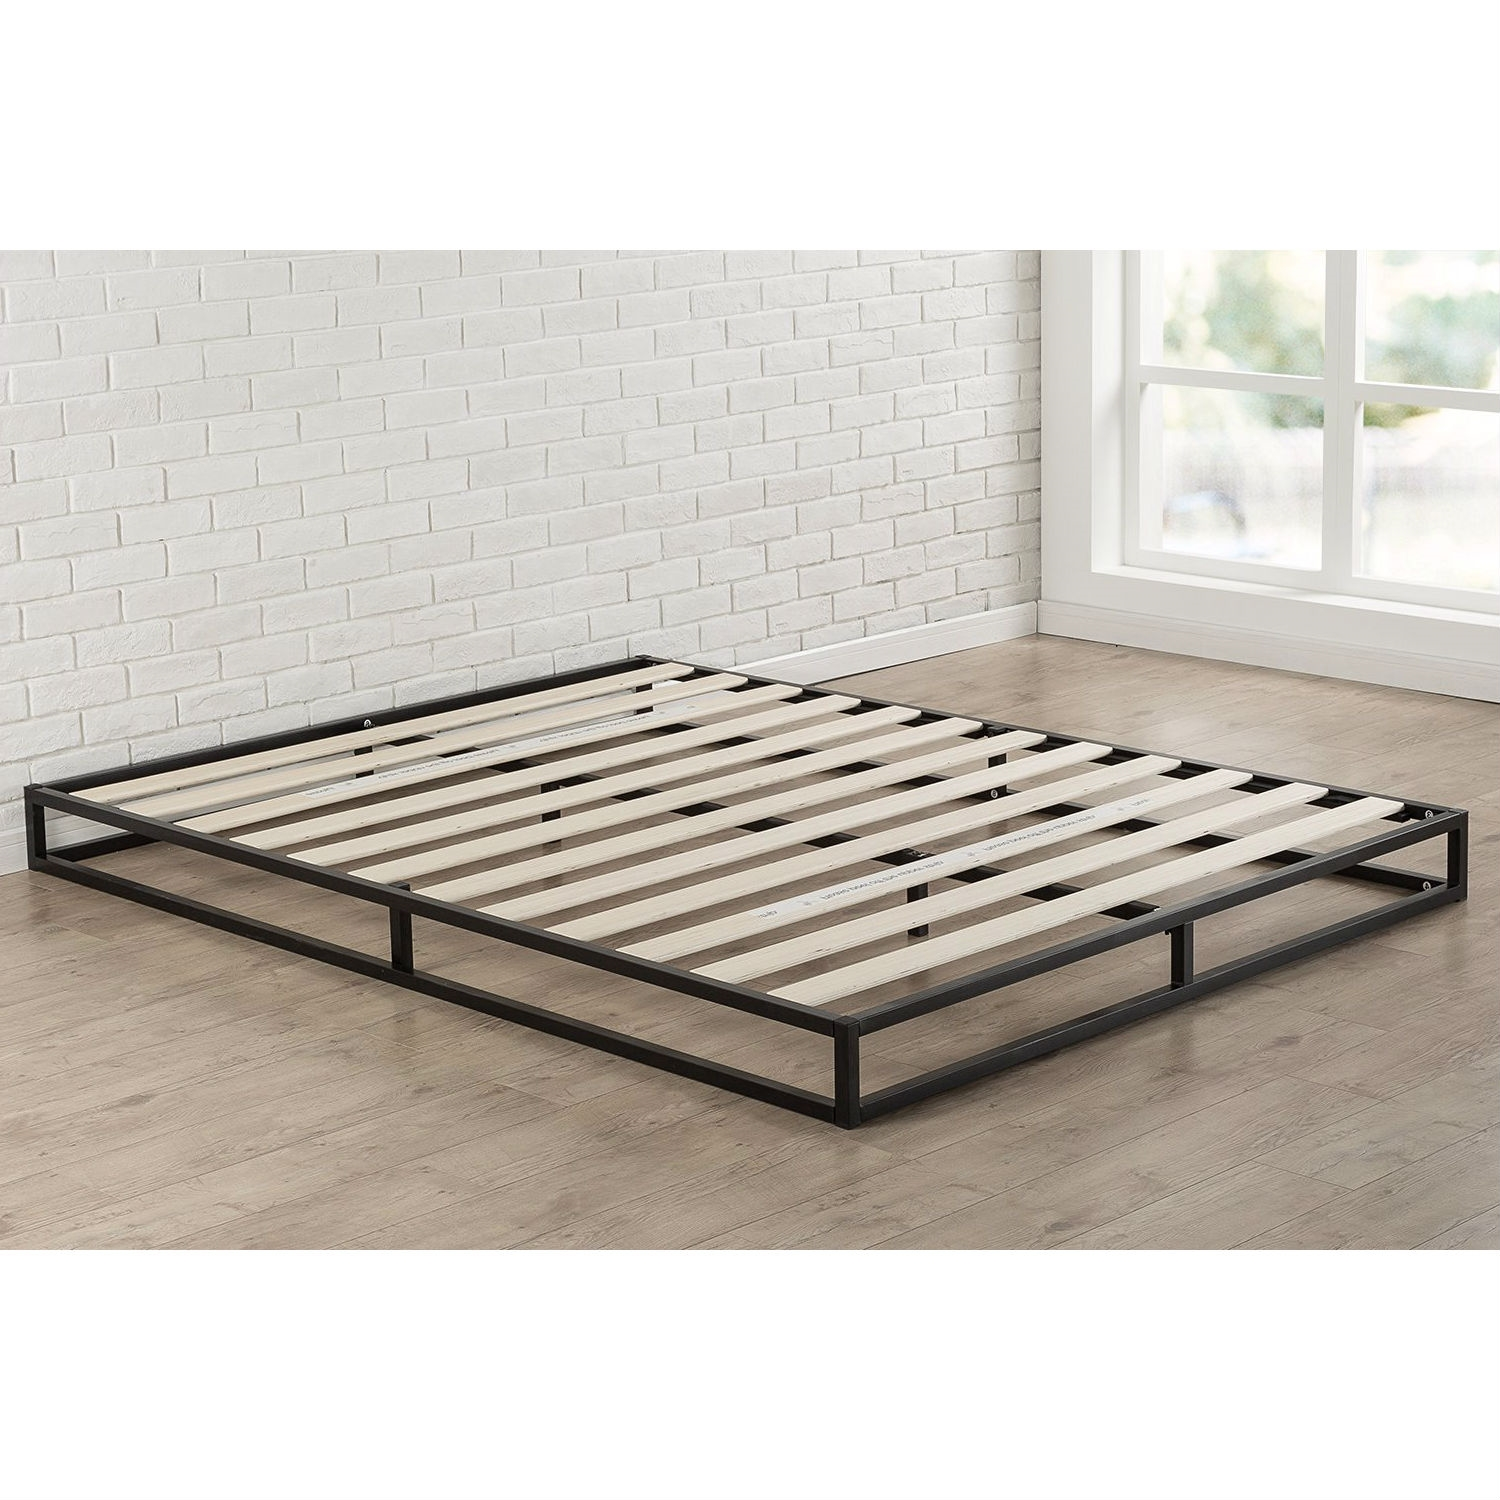 Popular 225 List Low Profile Platform Bed King